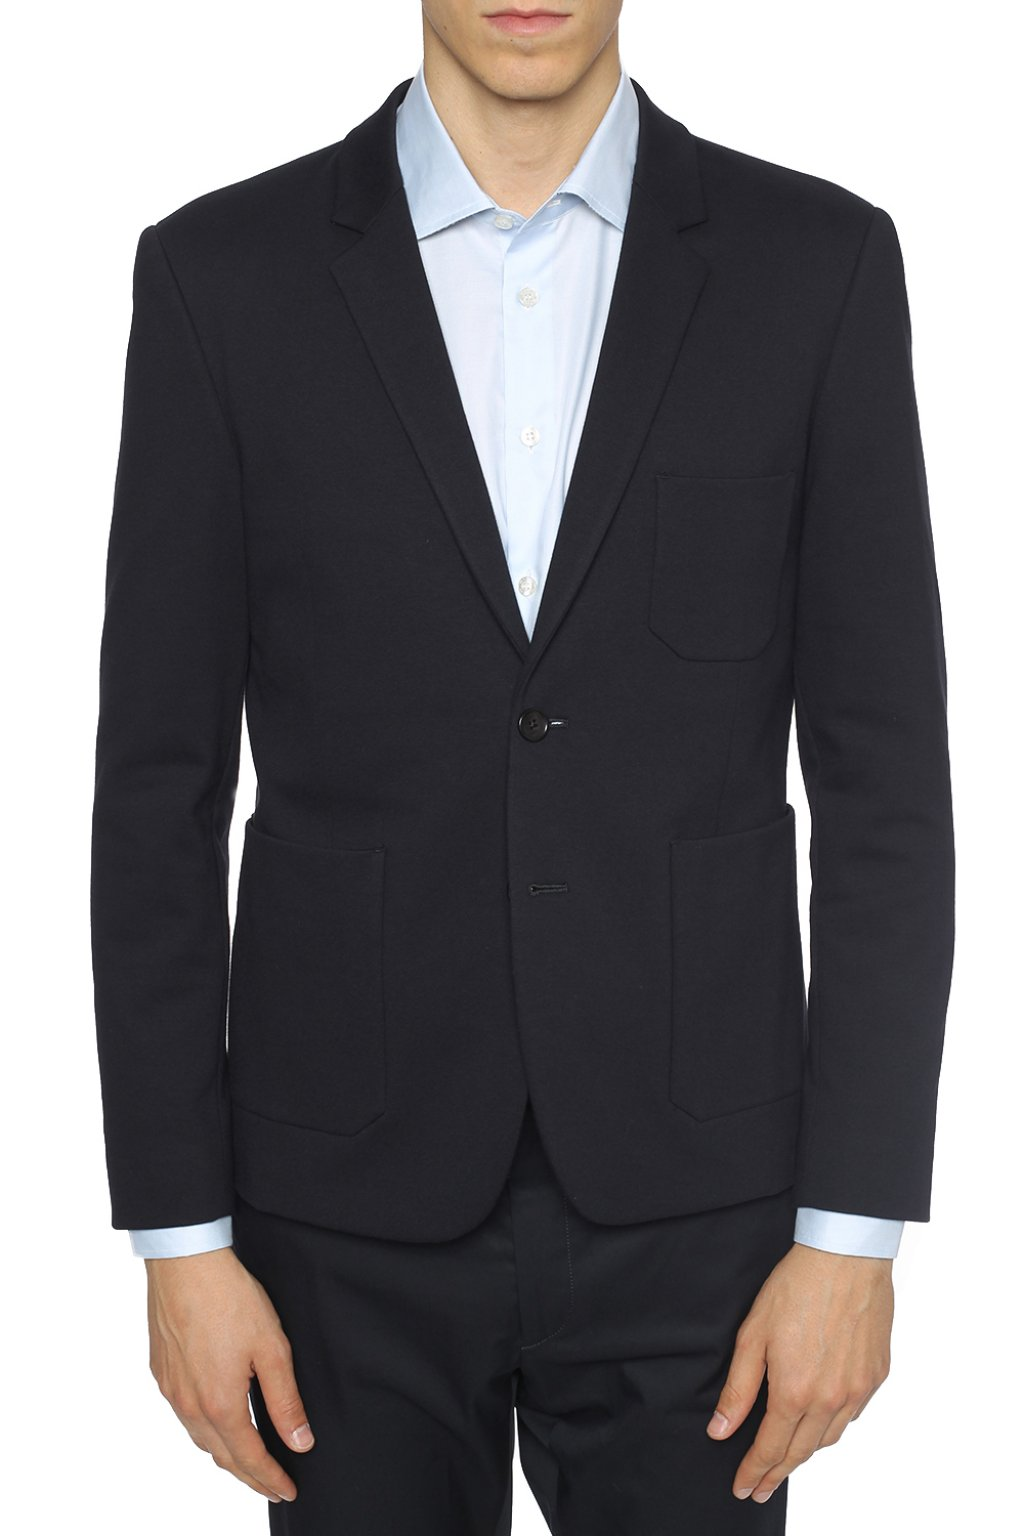 Paul Smith Blazer with notch lapels